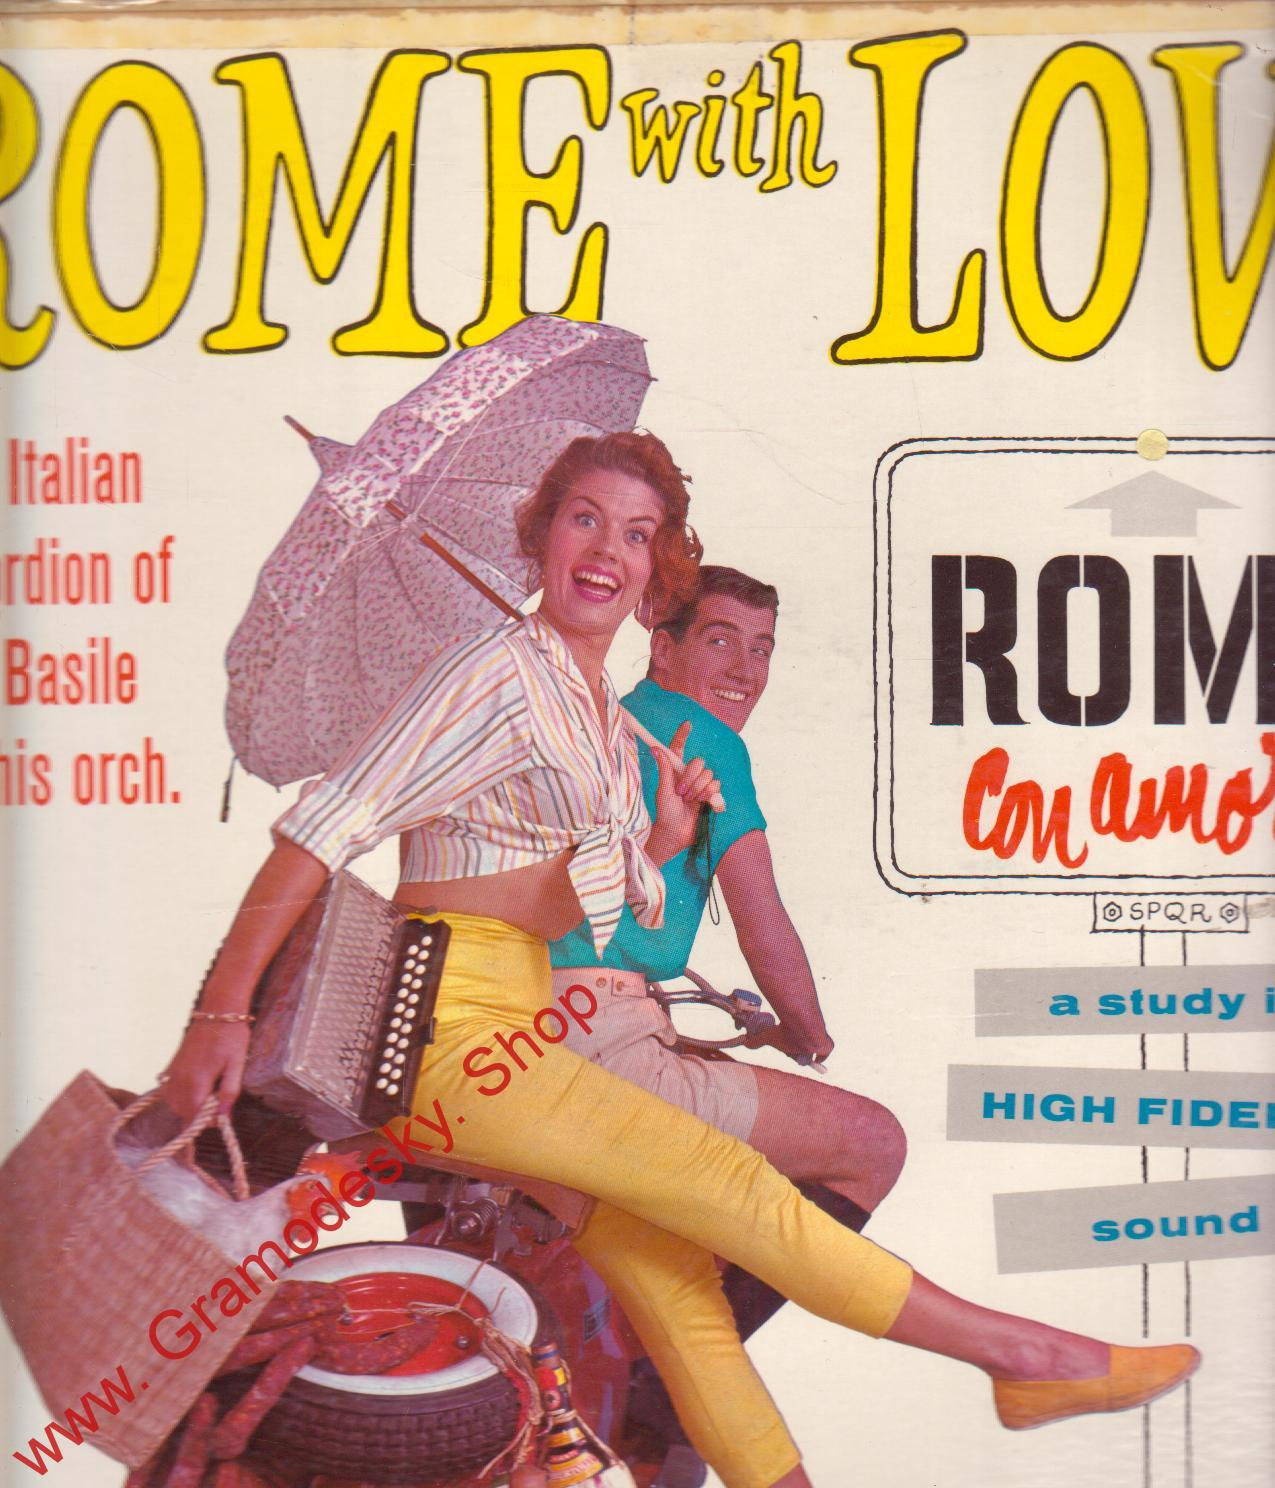 LP Rome with Love, the Italian Accordion of Jo Basile and his otch., 1957